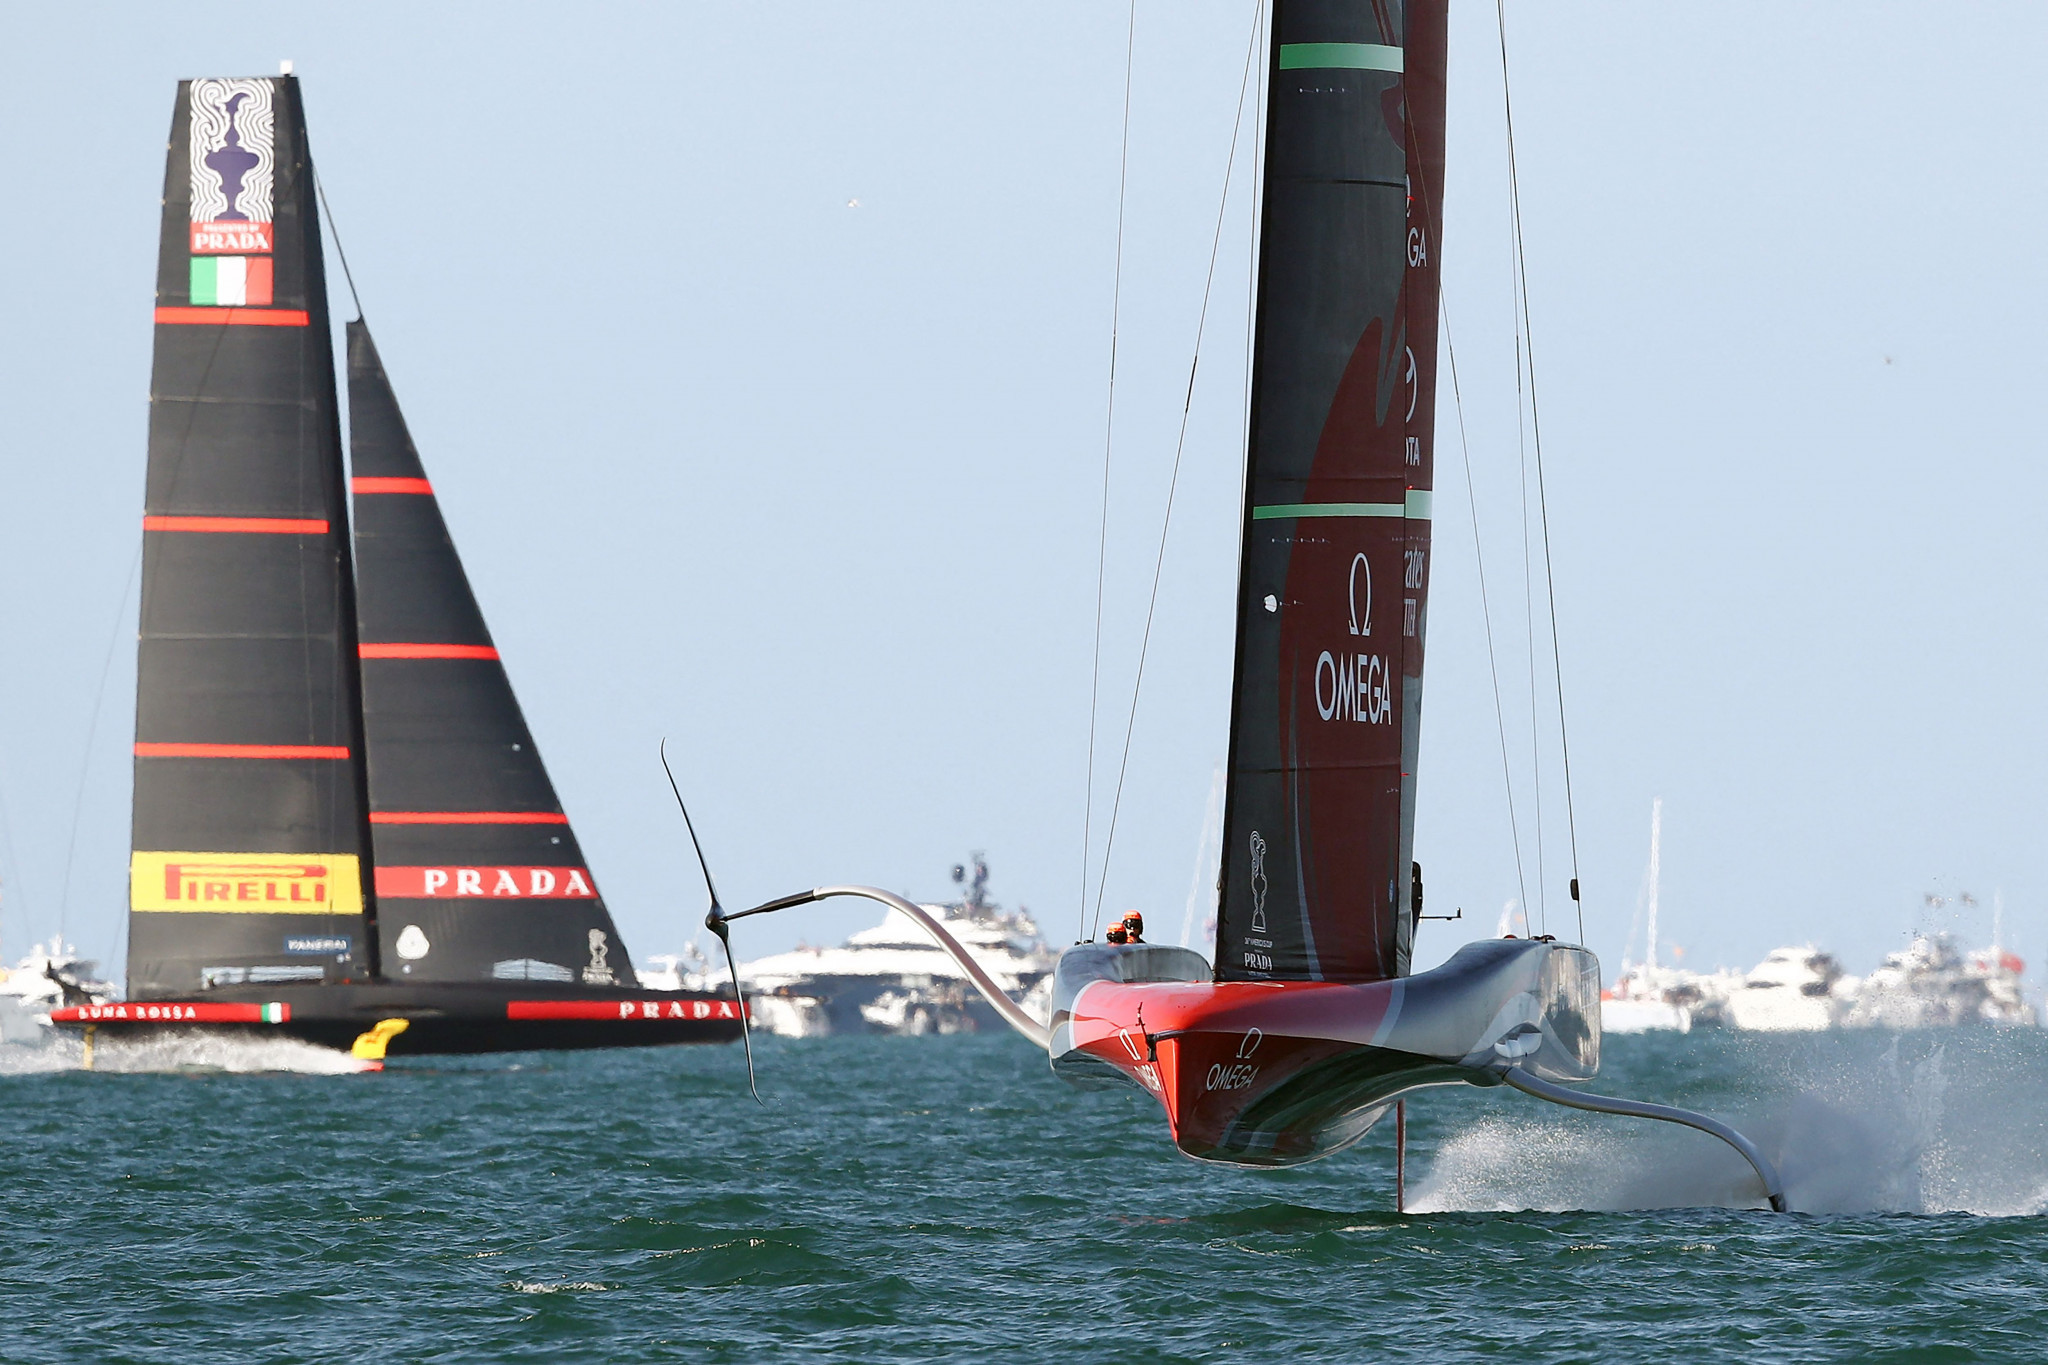 Team New Zealand and Luna Rossa level pegging in tussle to win America's Cup